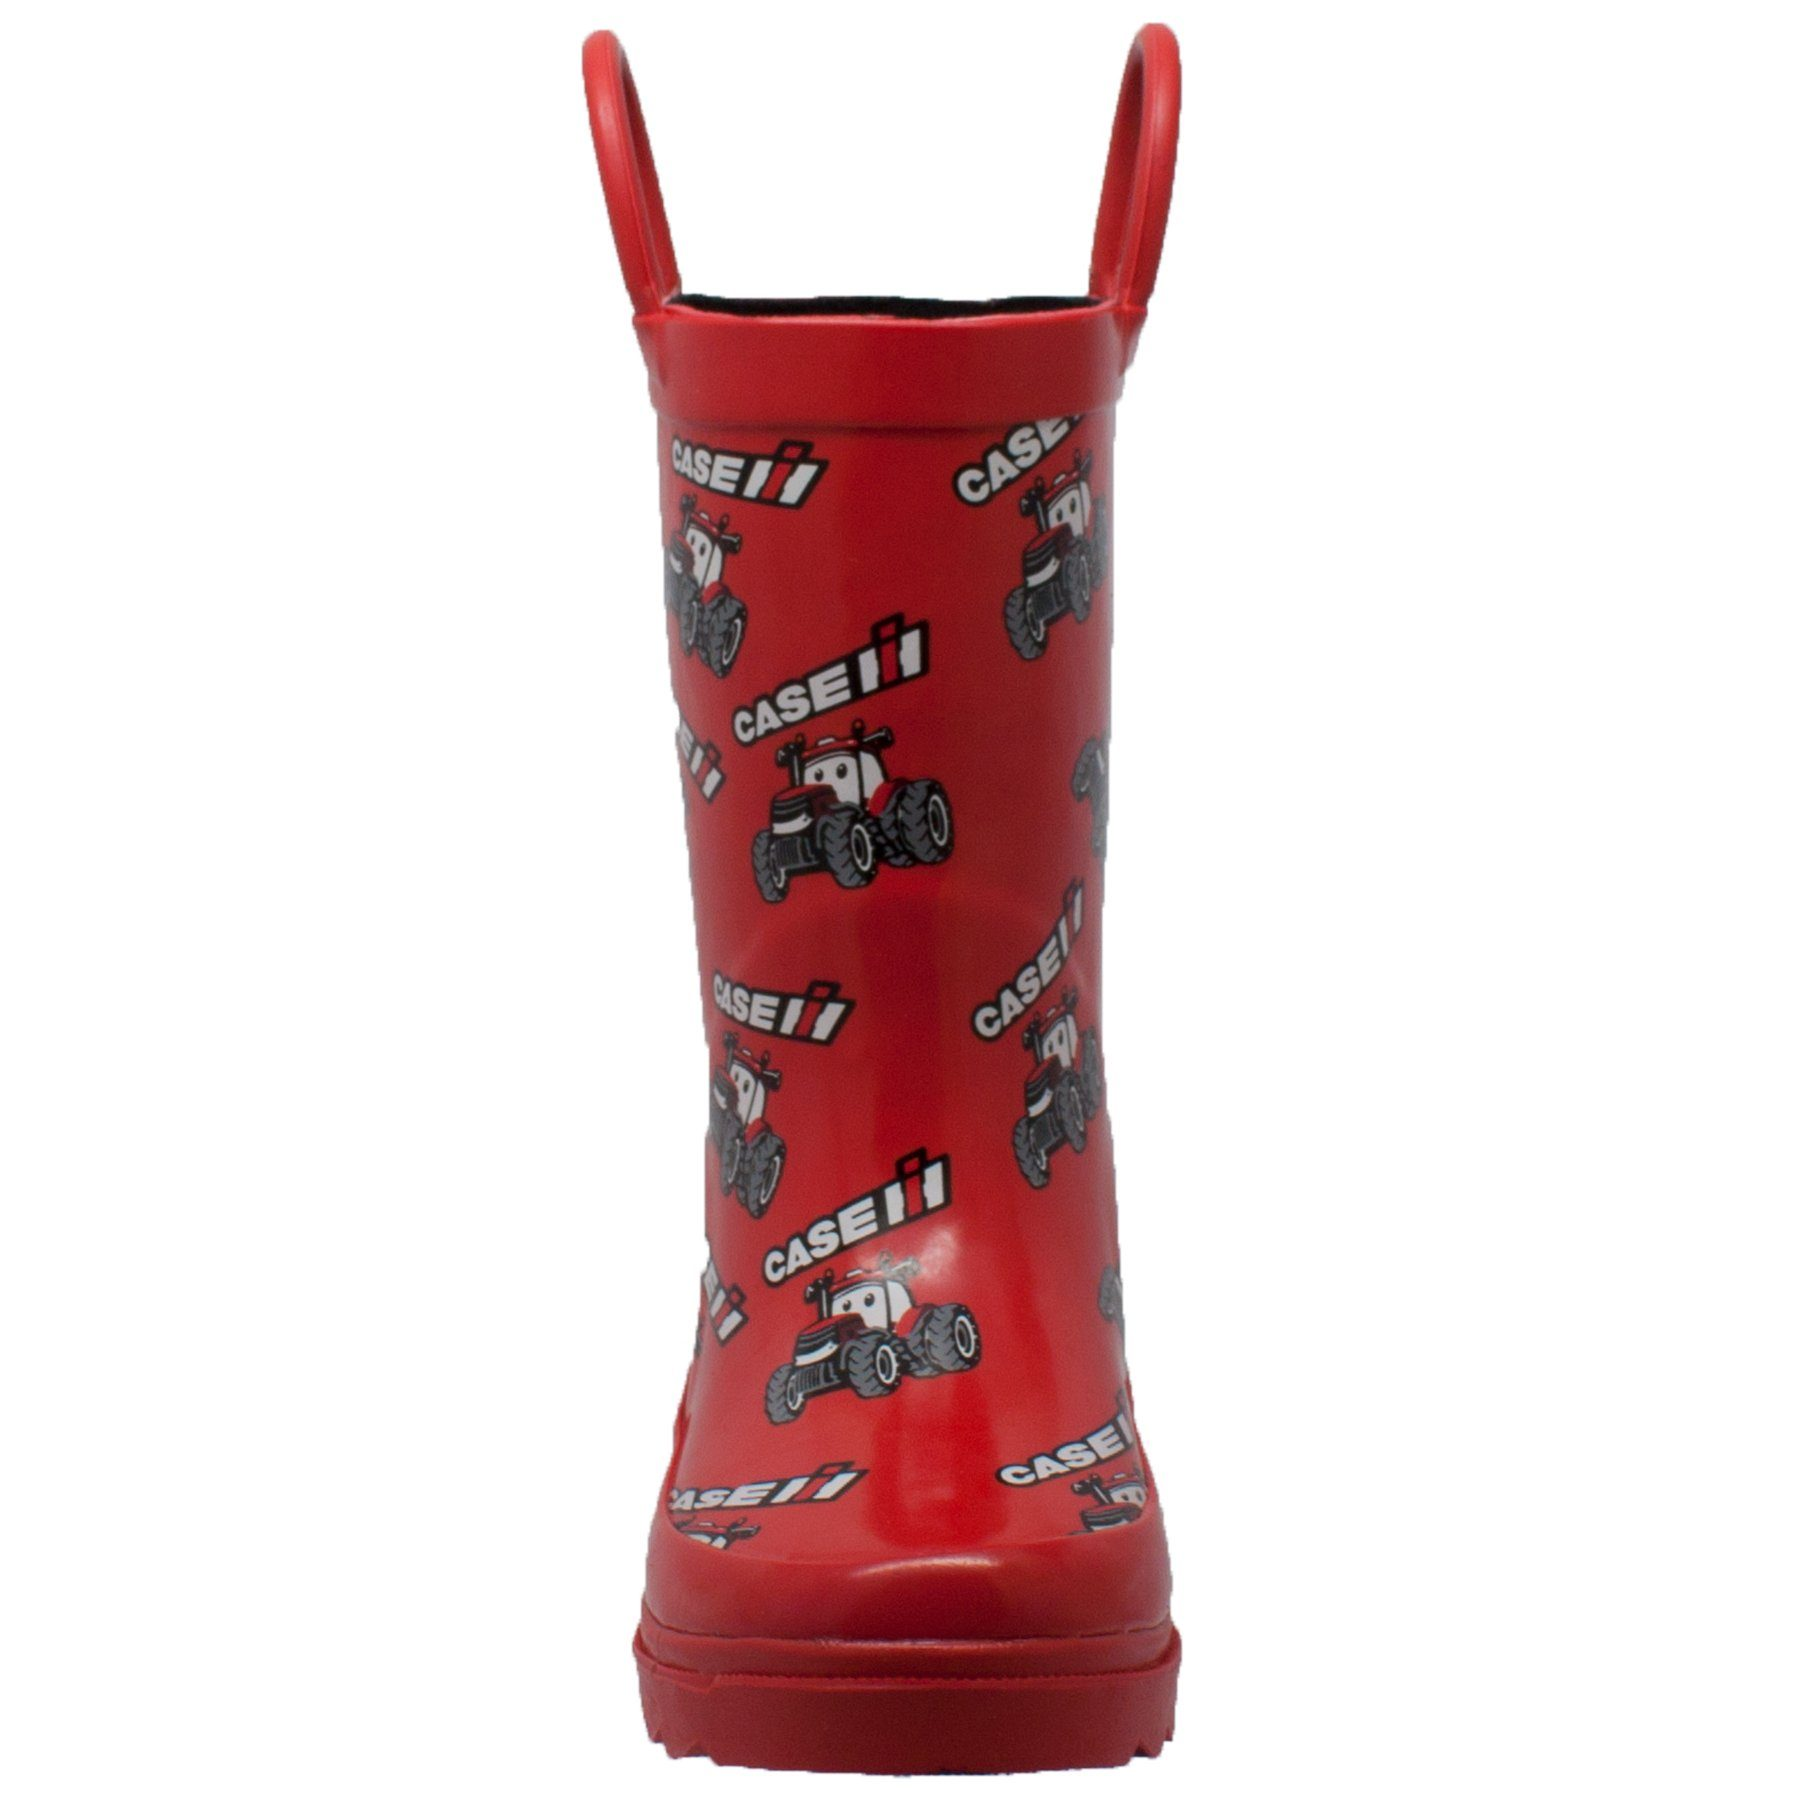 Children's Boots - Children's Big Red Rubber Boots